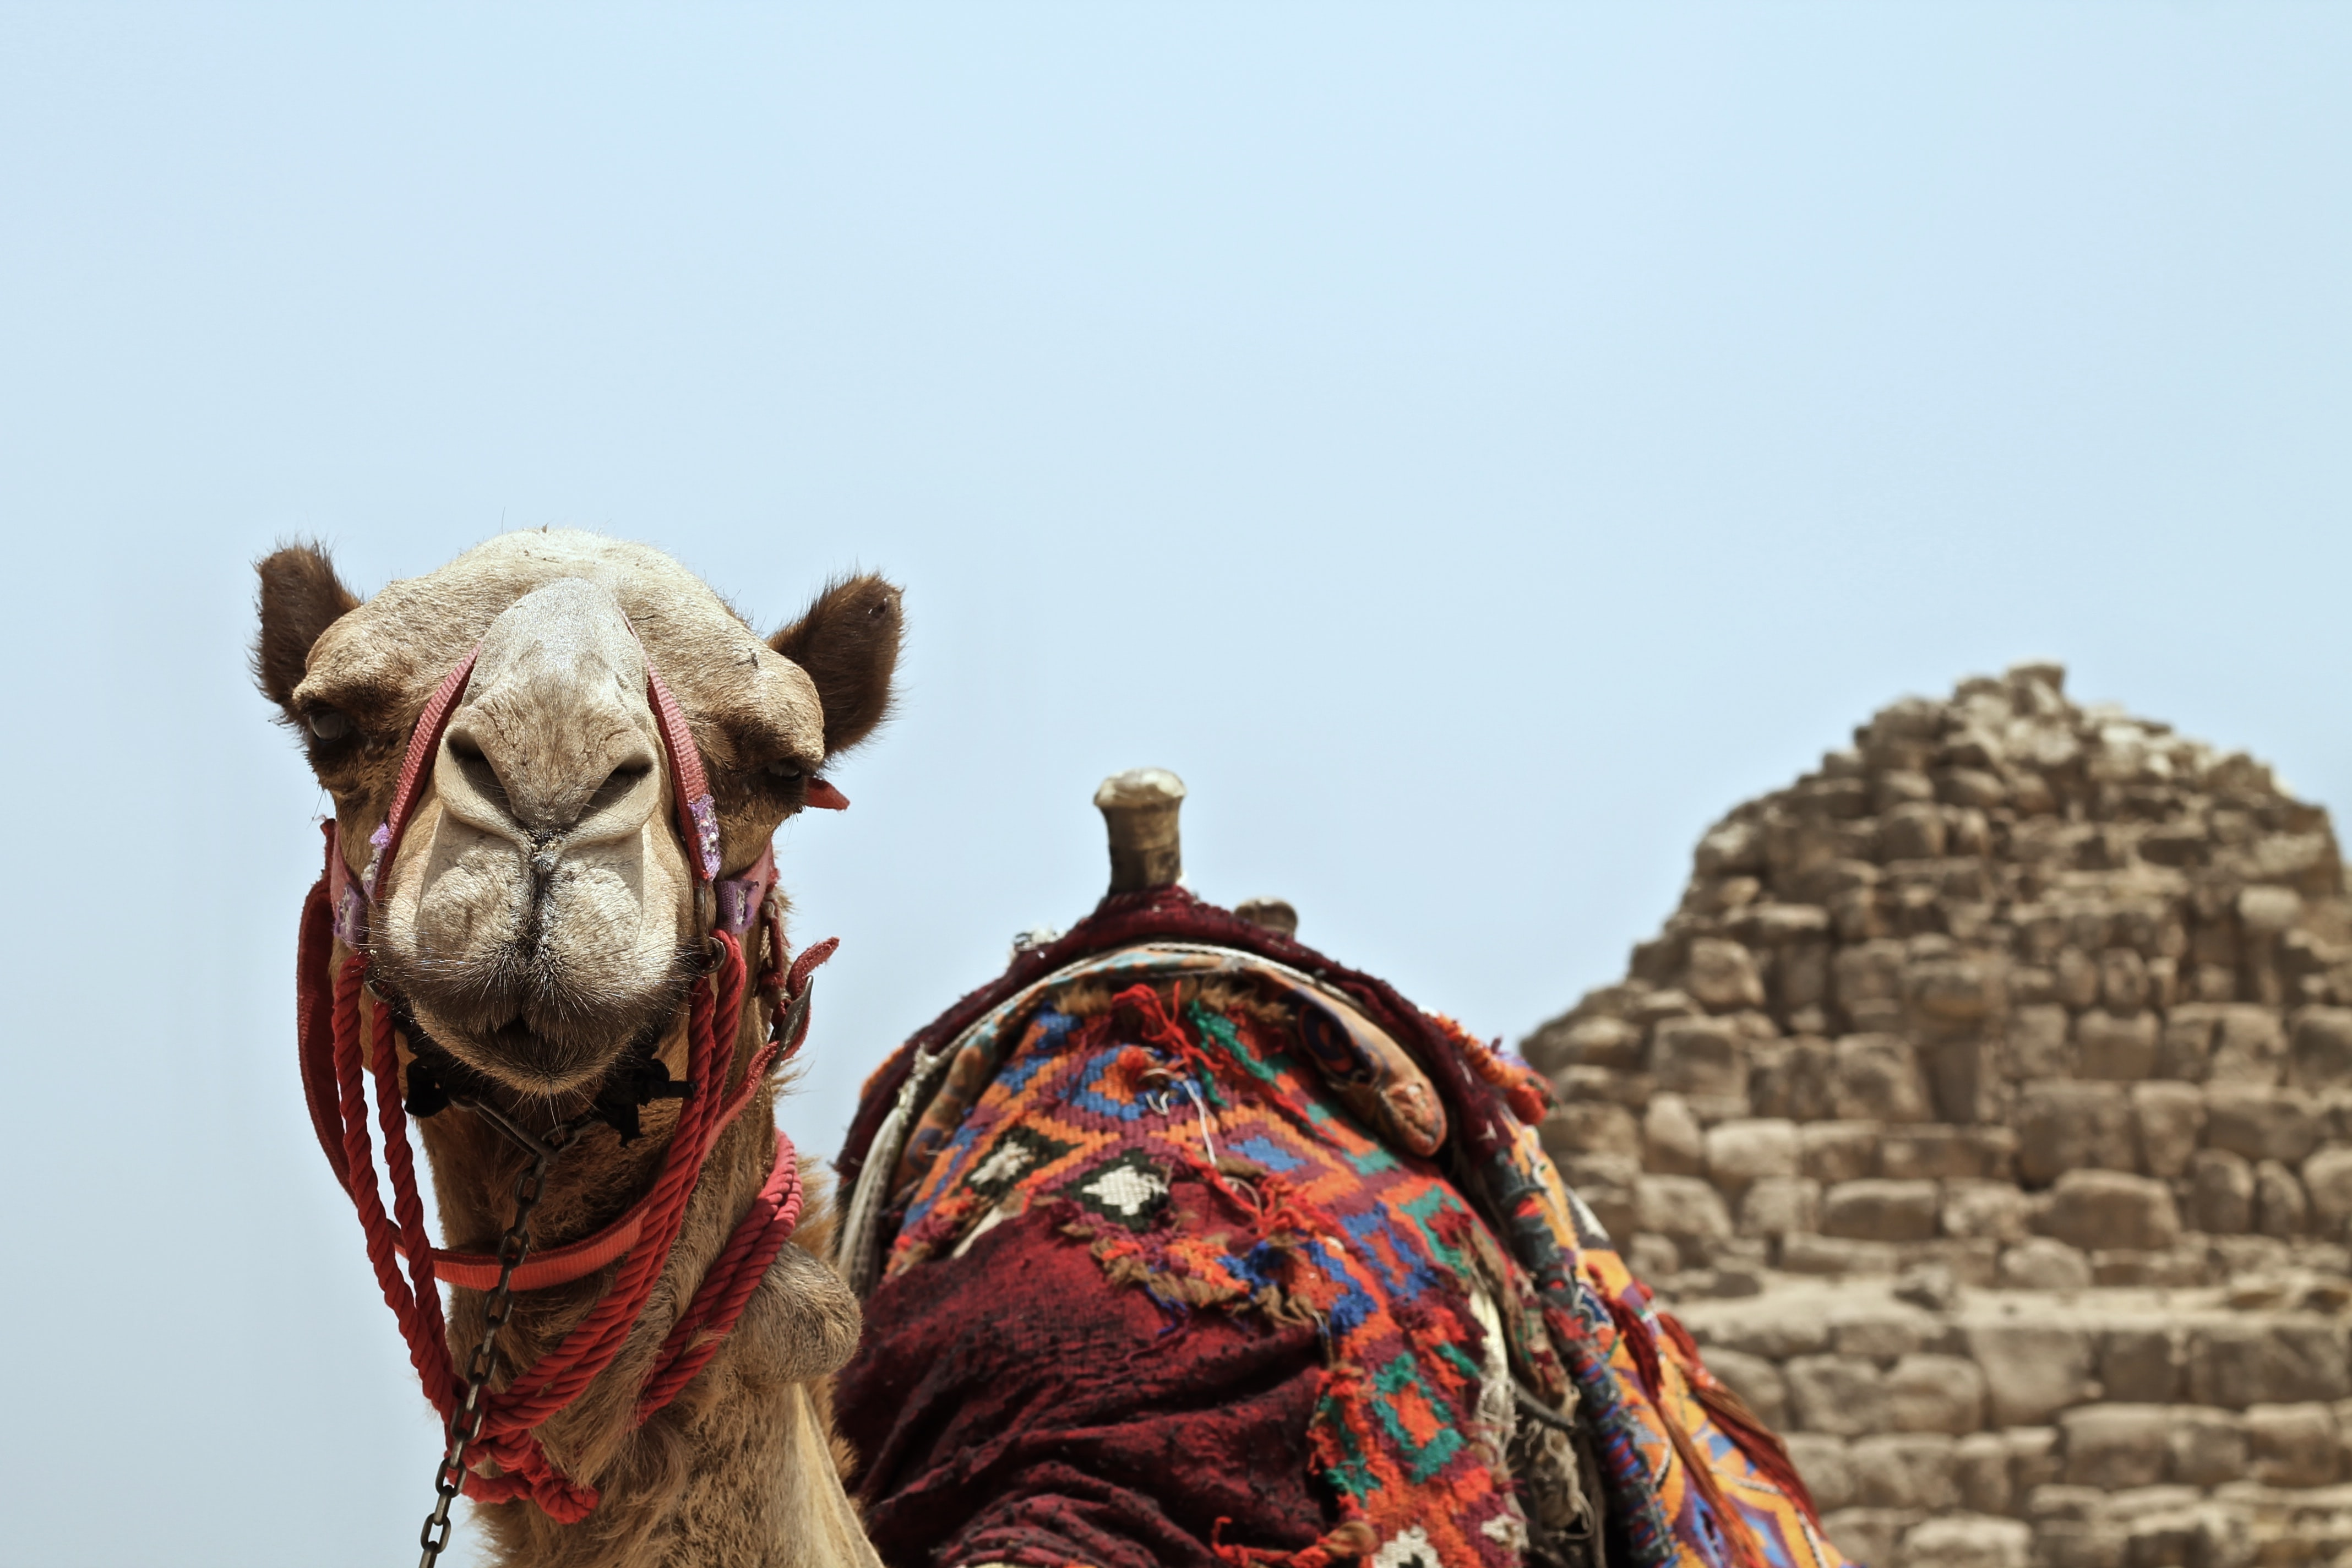 A camel with its saddle wrapped in patterned red fabrics standing in front of The Great Pyramids in Egypt